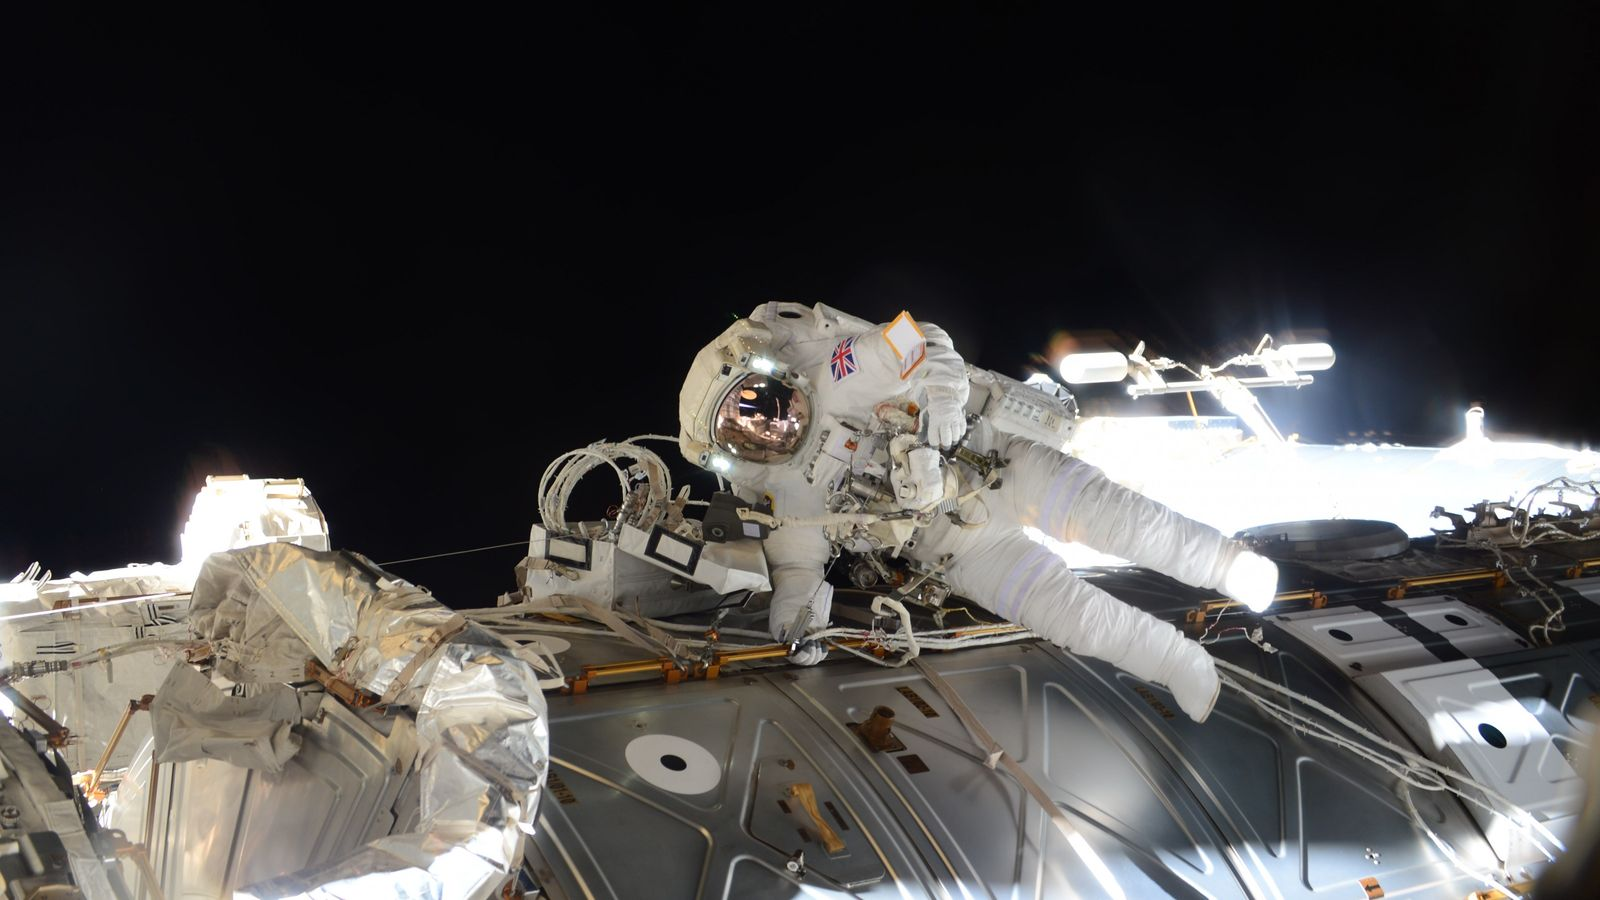 ESA astronaut Tim Peake during a spacewalk.